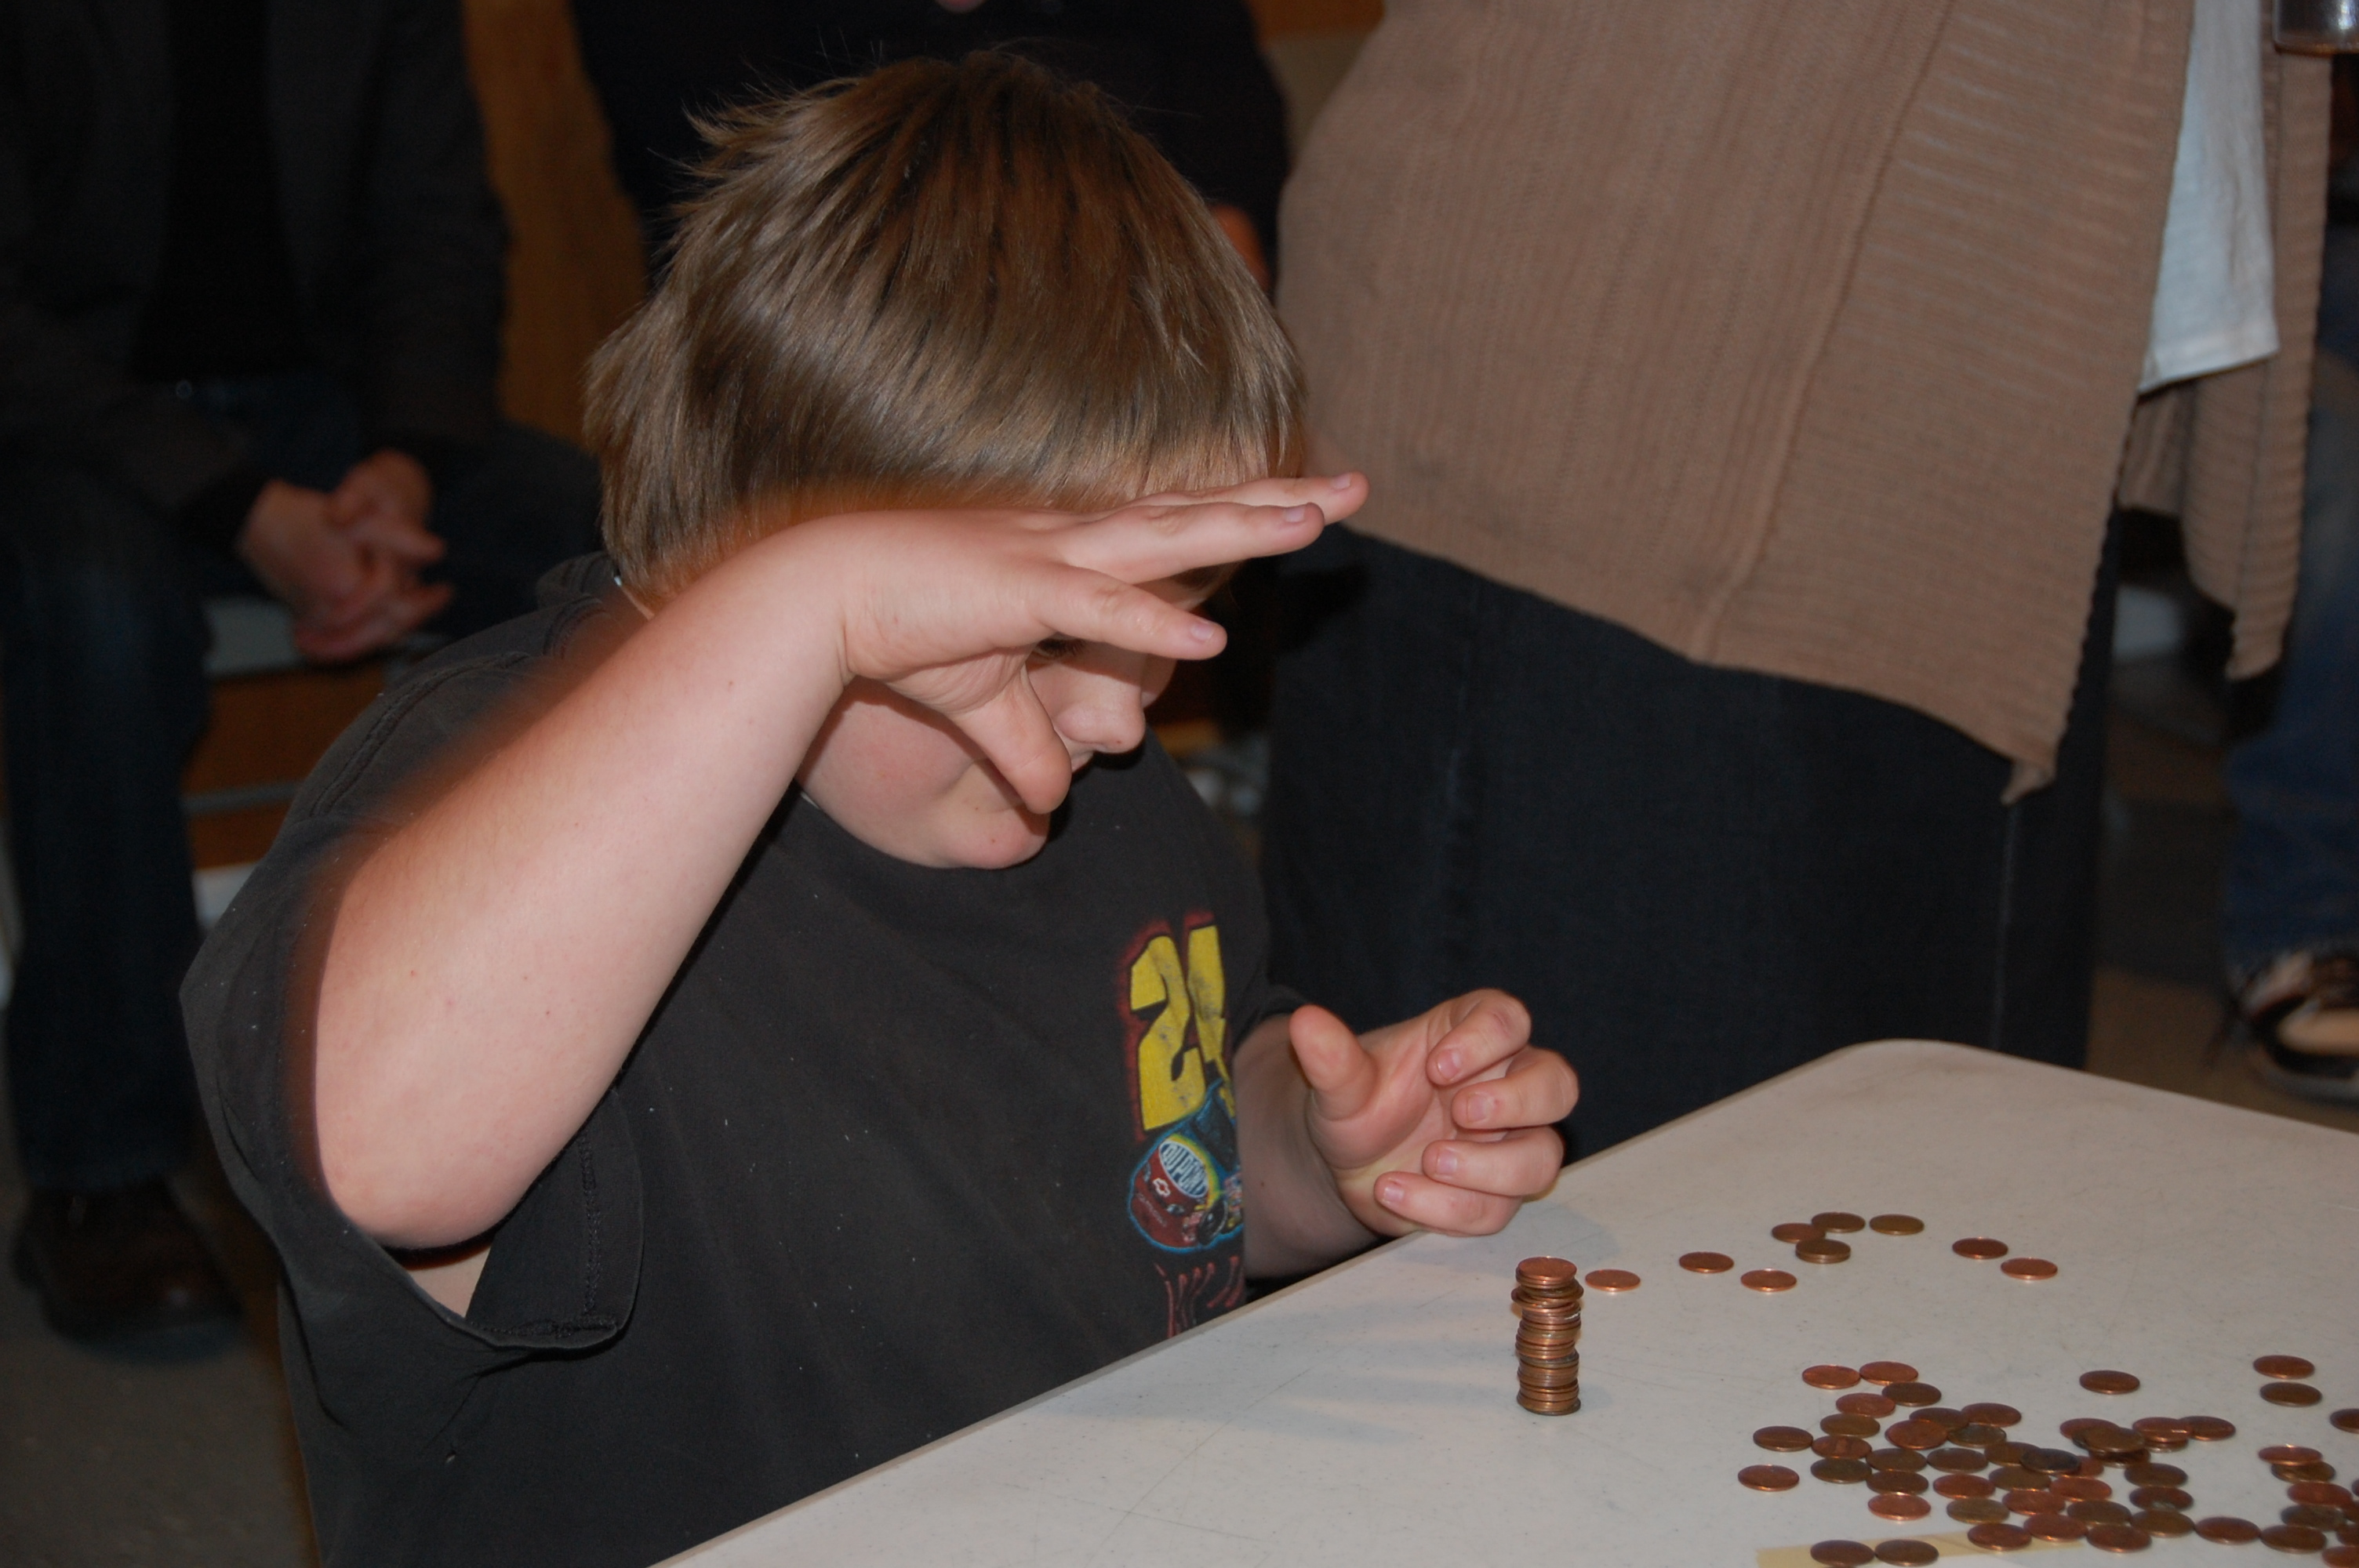 See how many pennies you can stack up in a certain amount of time.